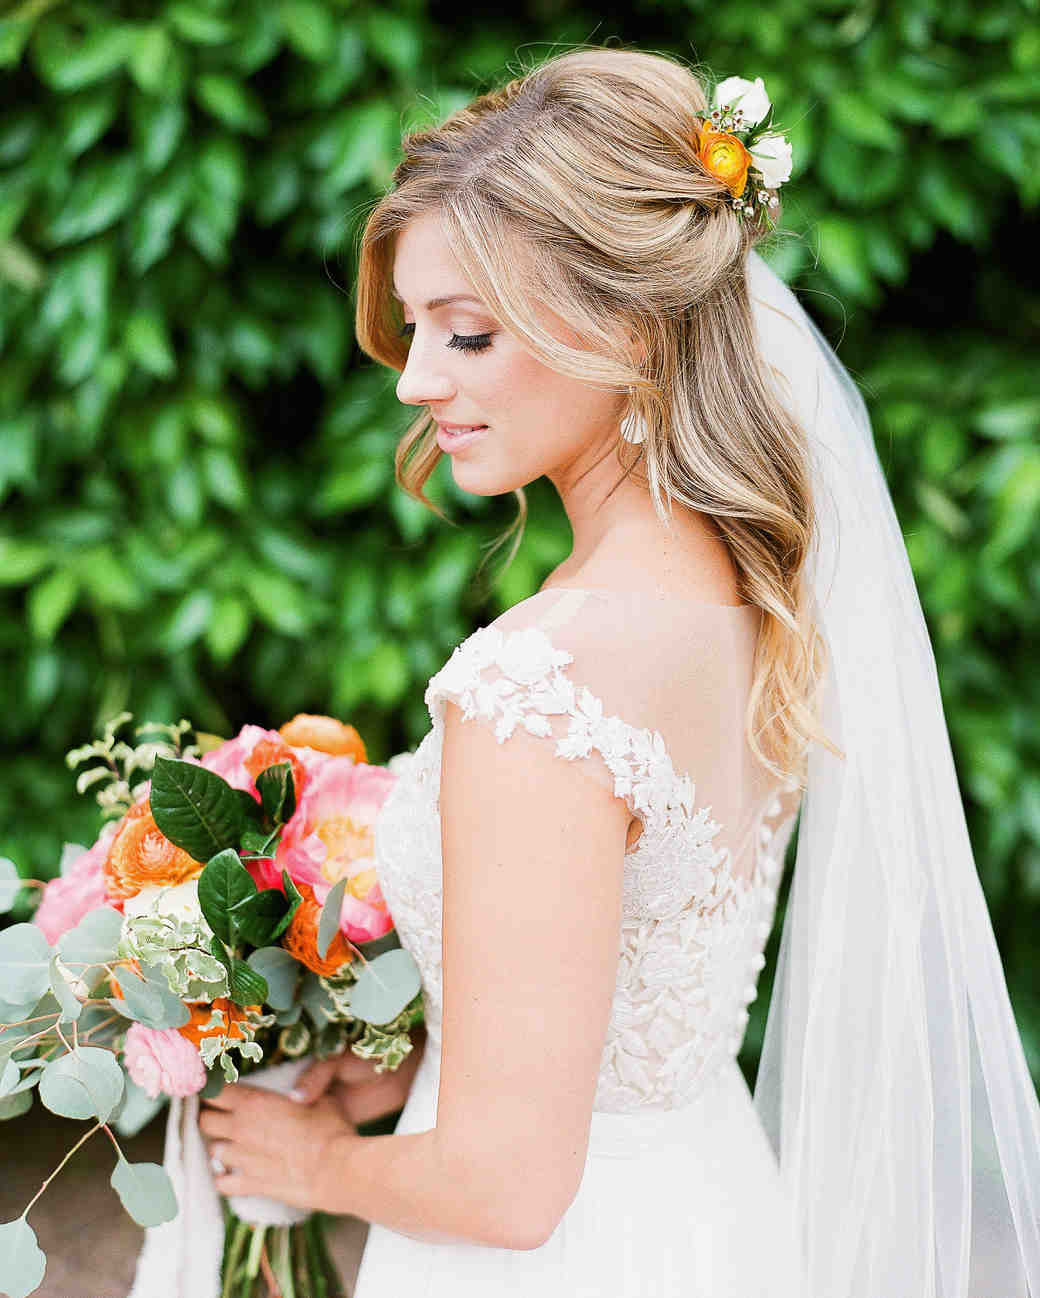 Wedding Styles: 28 Half-Up, Half-Down Wedding Hairstyles We Love